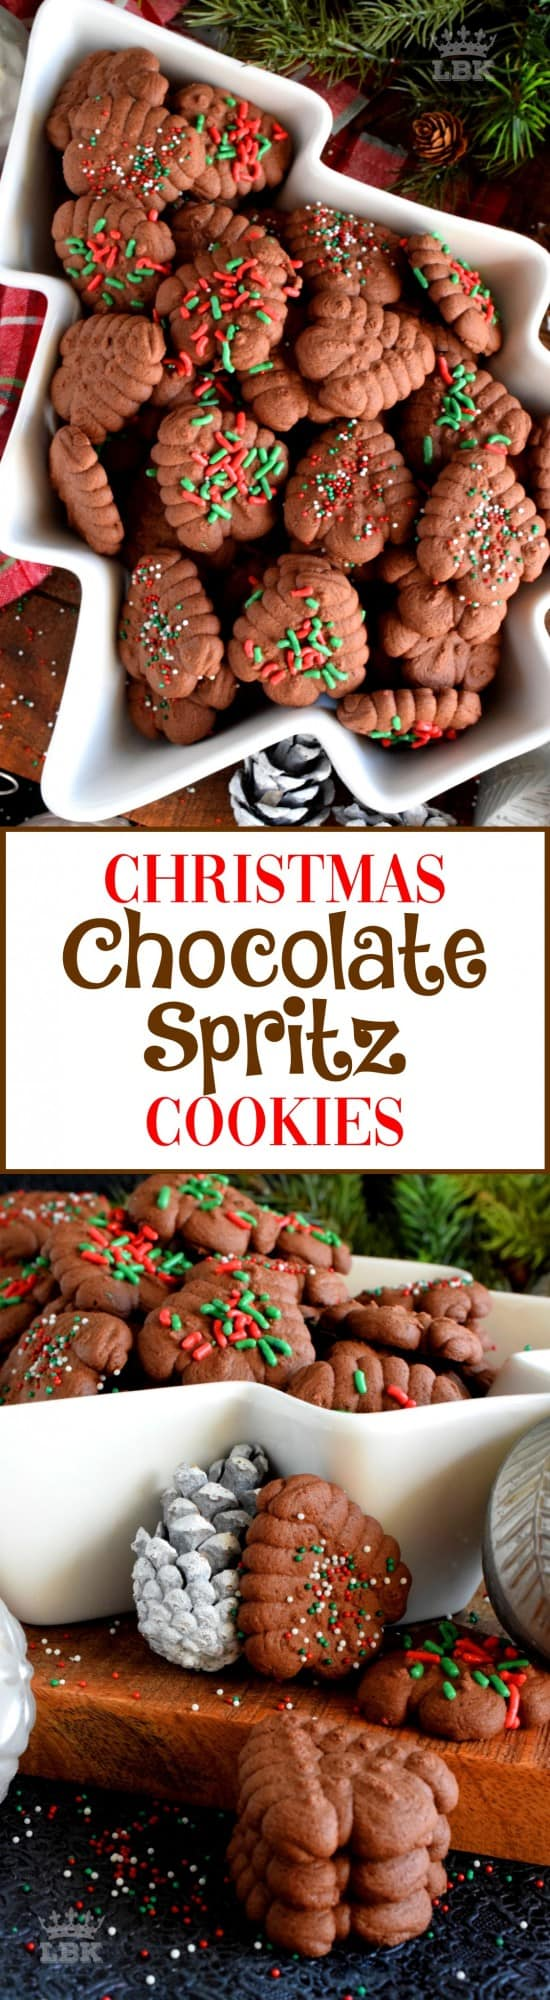 Christmas Chocolate Spritz Cookies - When it comes to baking with the purpose of gift giving, a Christmas cookie spritz is the best way to go, especially if they're chocolate! #spritz #cookies #press #holiday #christmas #chocolate #baking